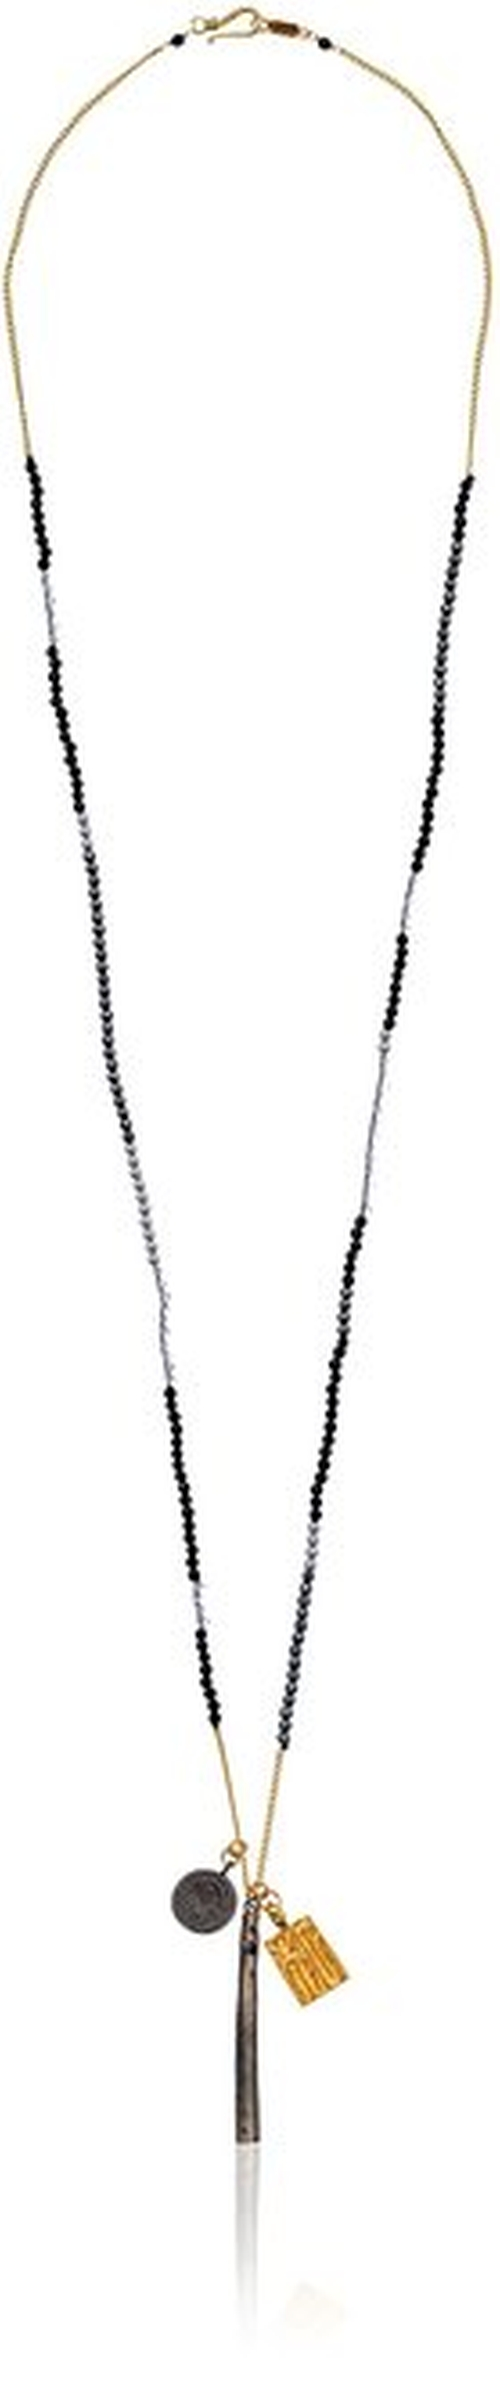 Onyx Mix Charm Pendant Necklace by Chan Luu in The Vampire Diaries - Season 7 Episode 5